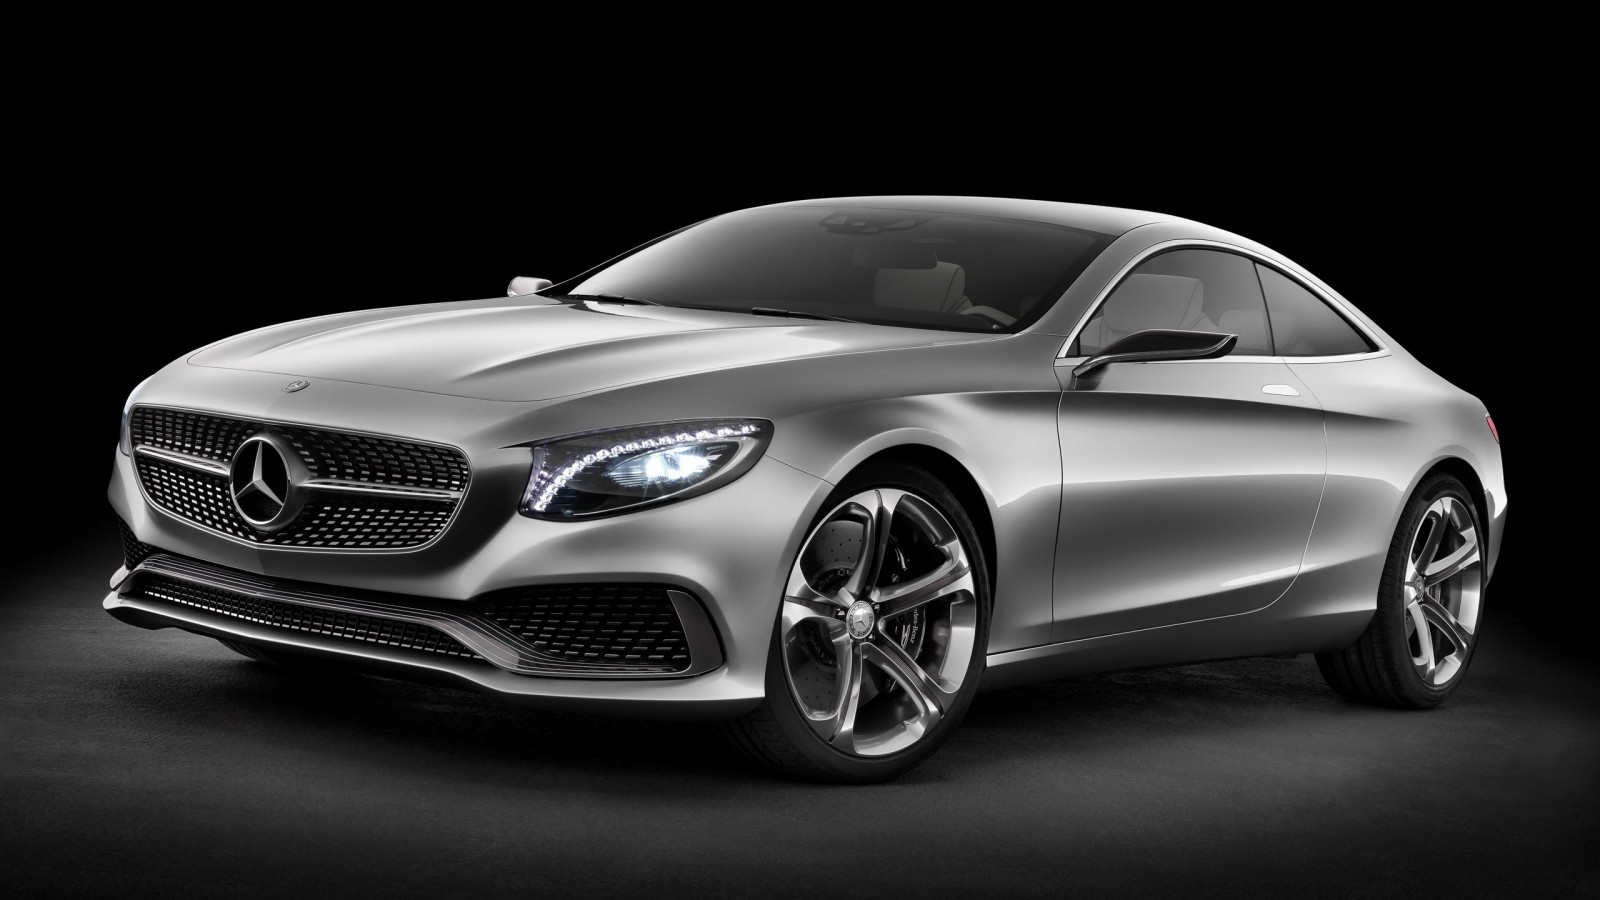 2013 mercedes benz s class coupe concept wallpaper hd. Black Bedroom Furniture Sets. Home Design Ideas